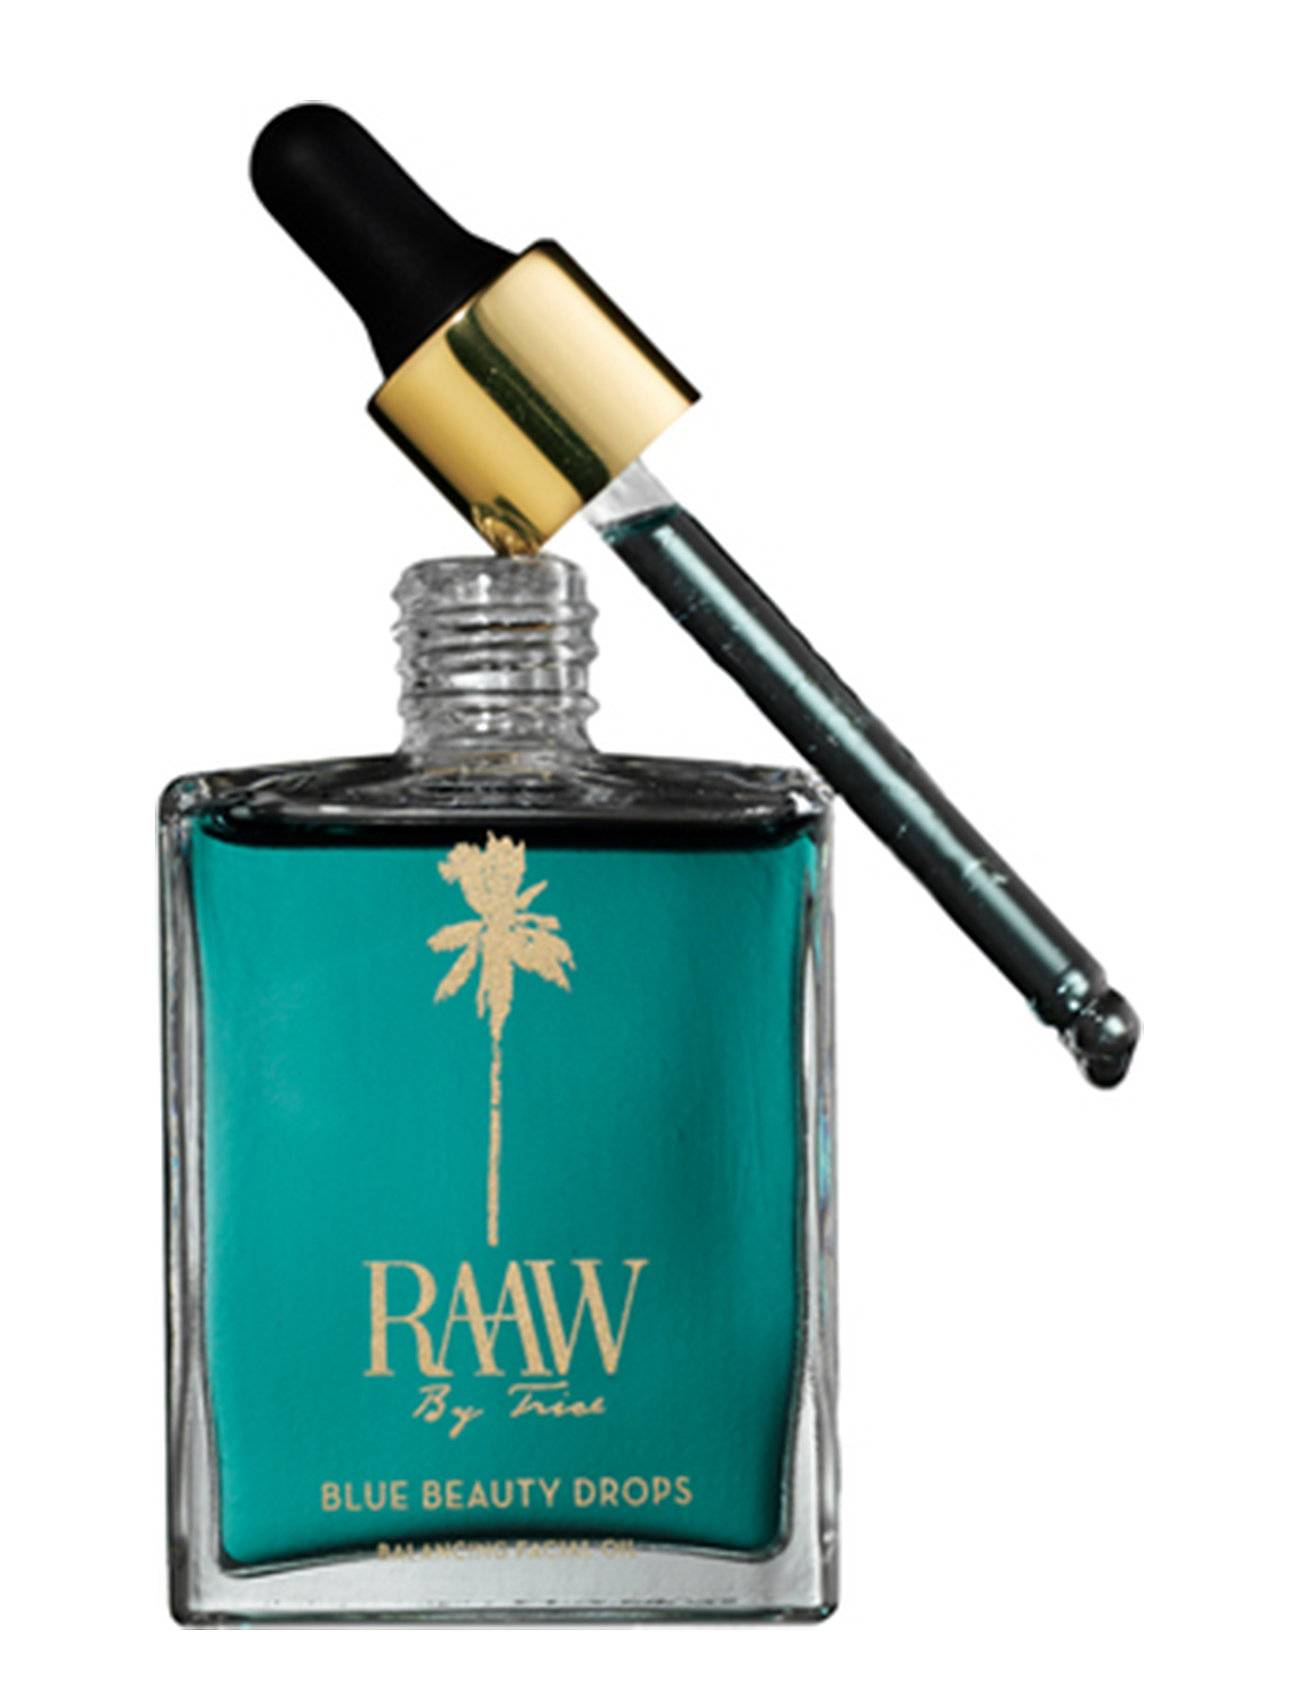 Raaw by Trice Blue Beauty Drops